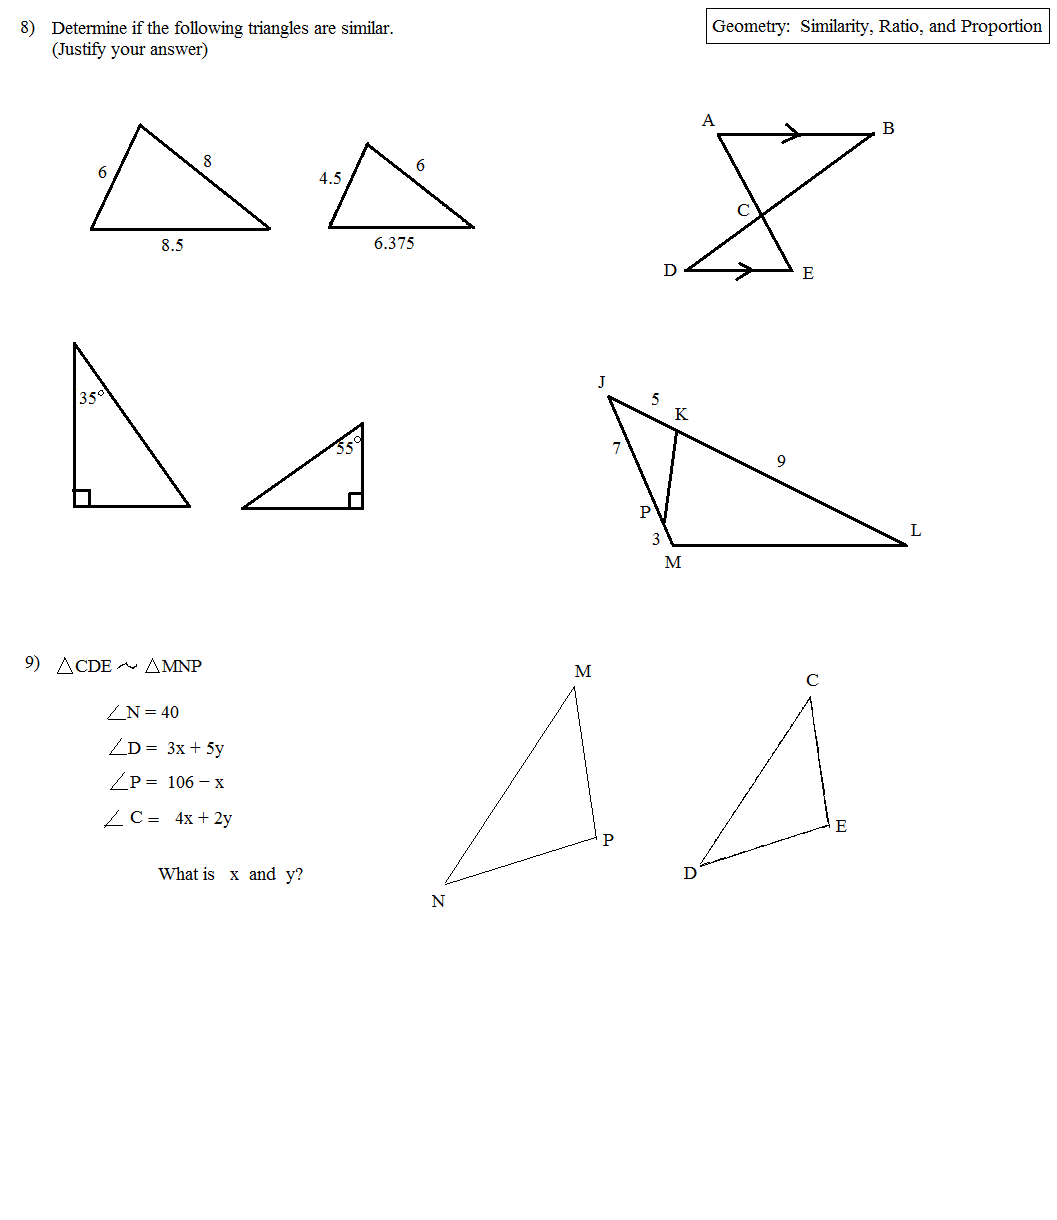 worksheet Similar Triangles Proportions Worksheet math plane similarity ratio and proportion questions proportions 0c